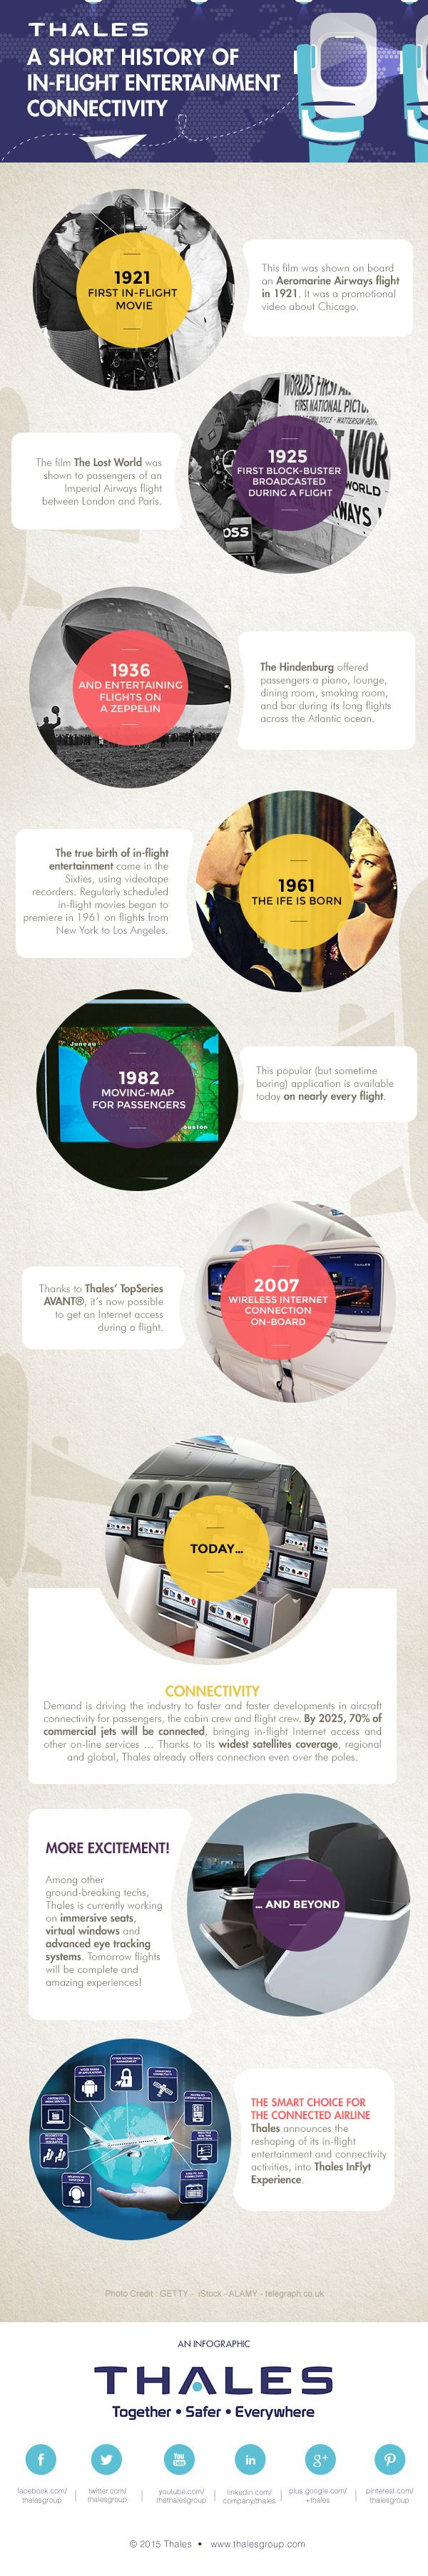 31 best security images on pinterest info graphics infographic a short history of inflight entertainment and connectivity biocorpaavc Gallery